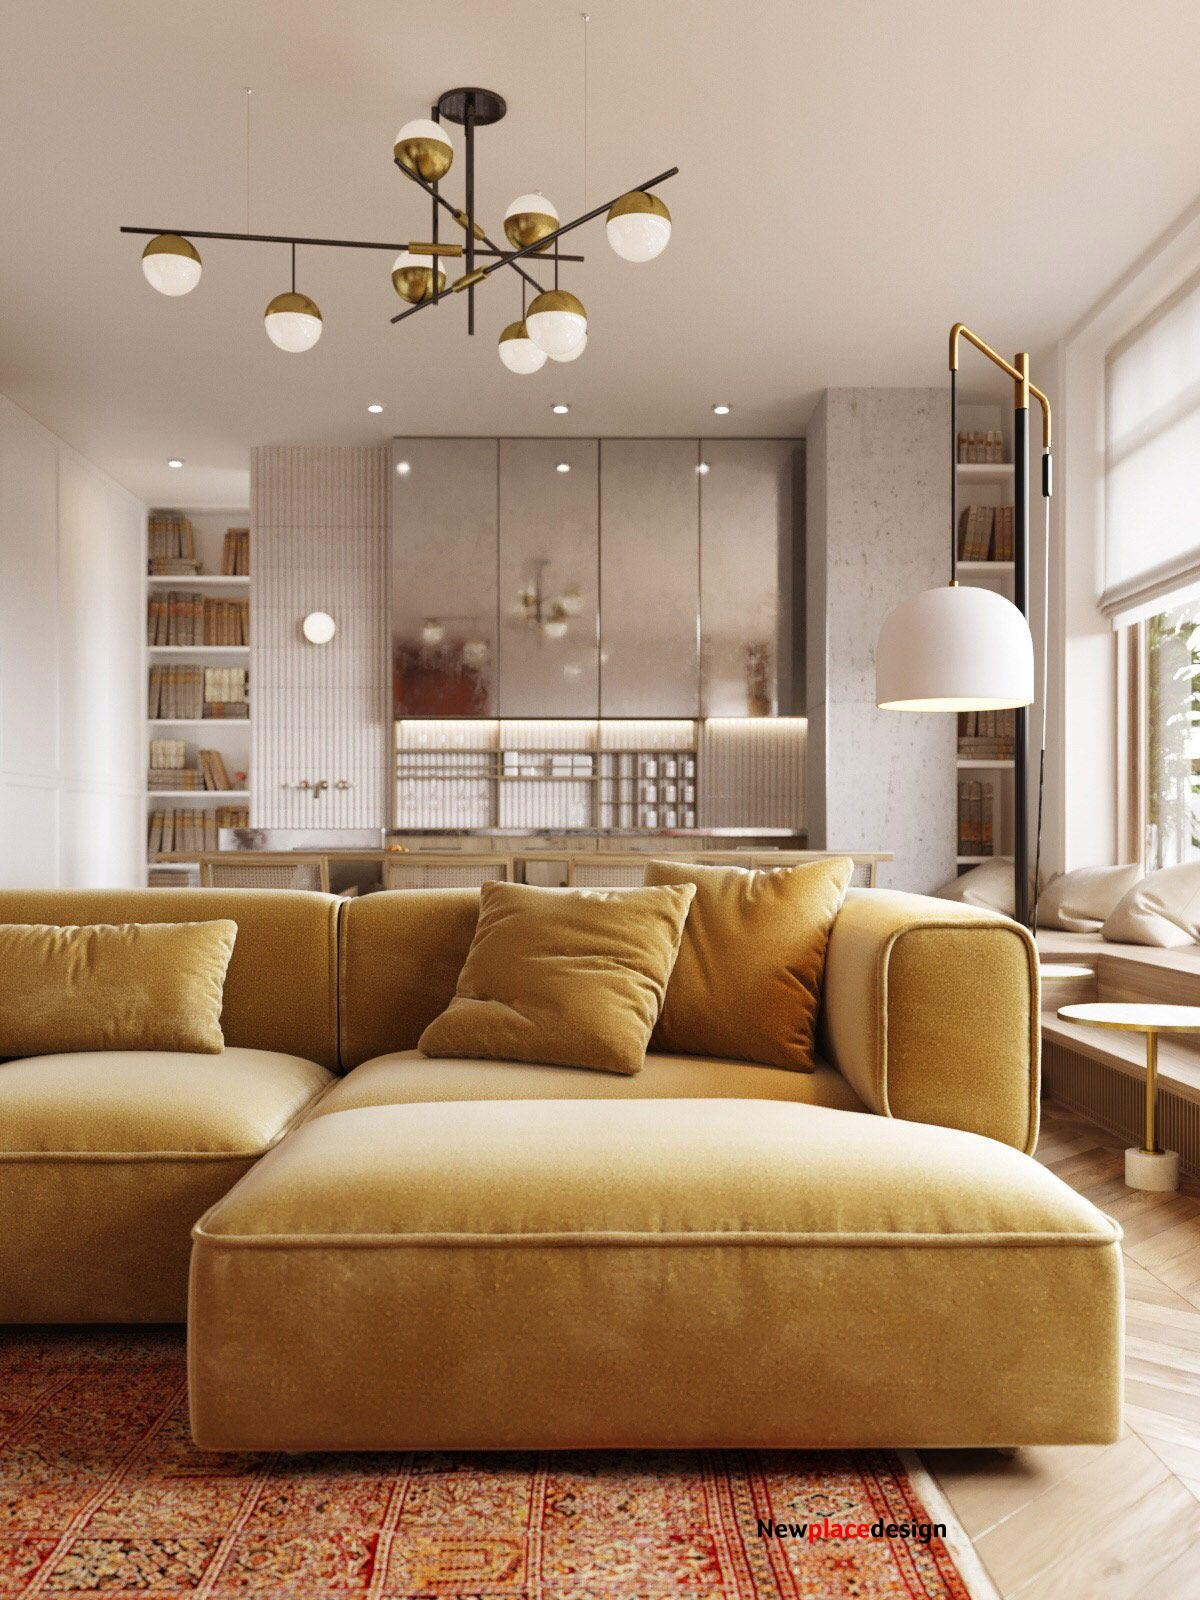 Warm decor idea with sand toned couch, red &orange carpet and flush-mount gold white & black fixture